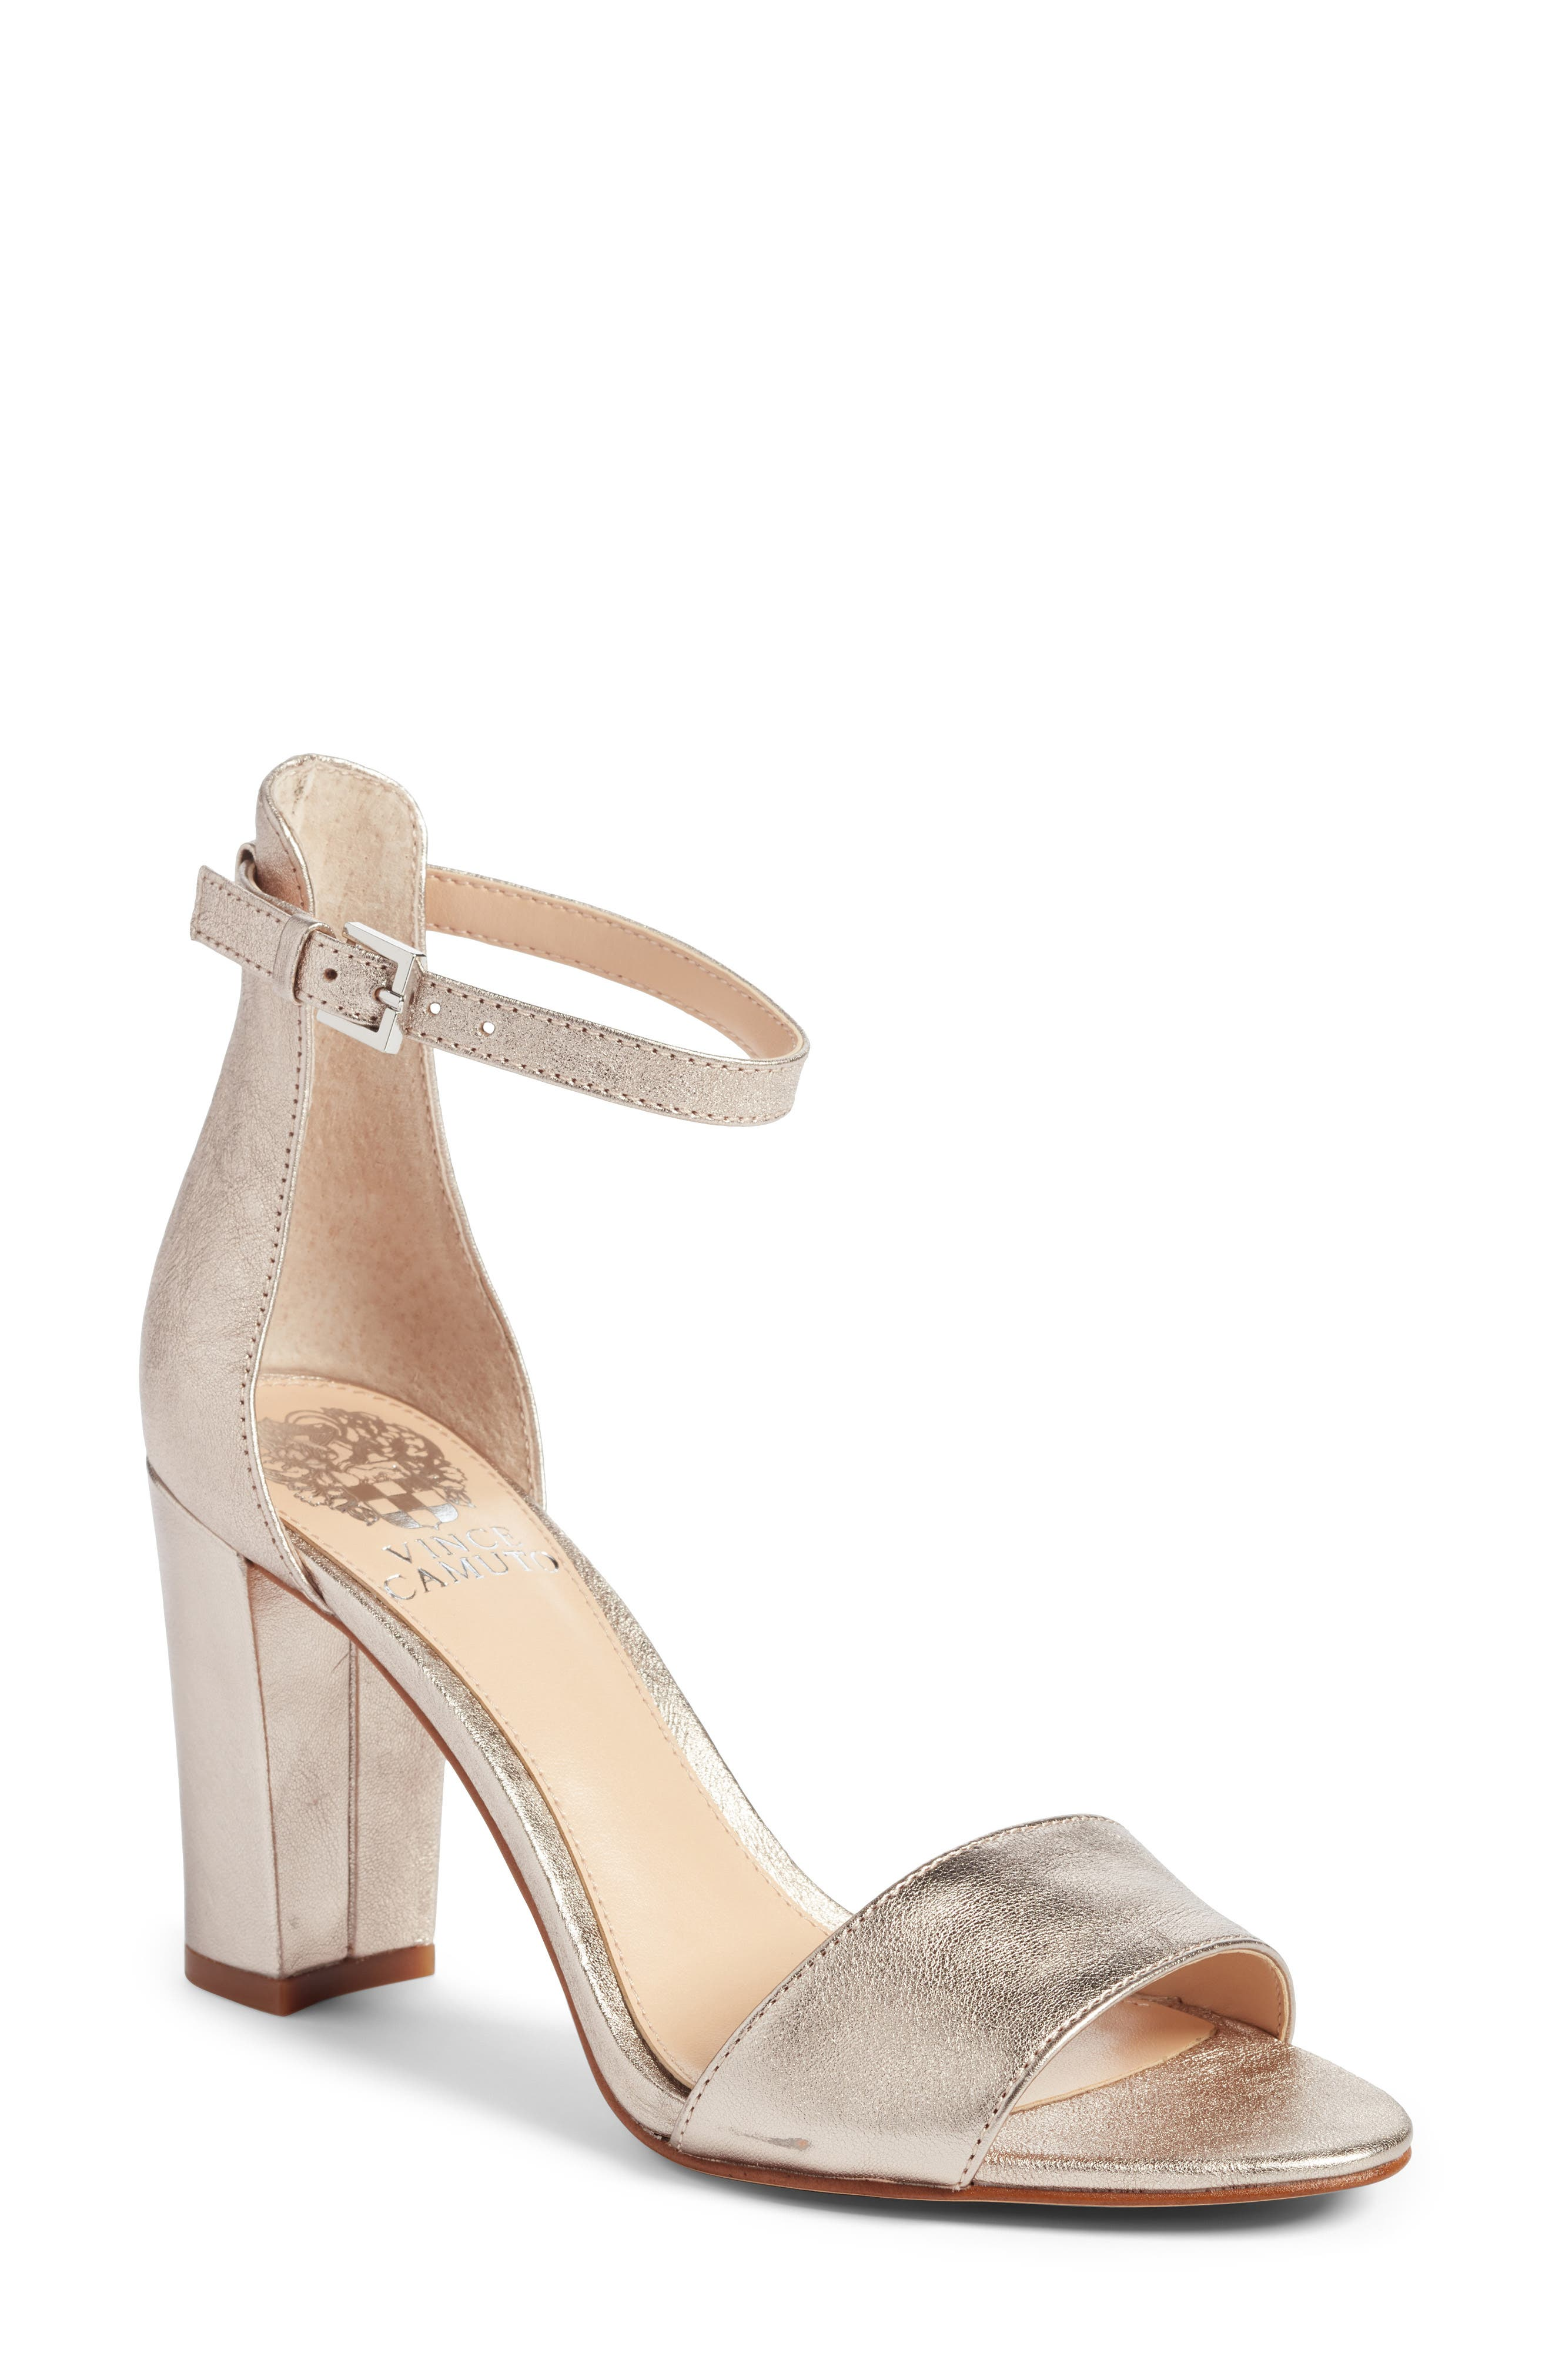 Corlina Ankle Strap Sandal,                         Main,                         color, Rose/ Rose/ Silver Fabric